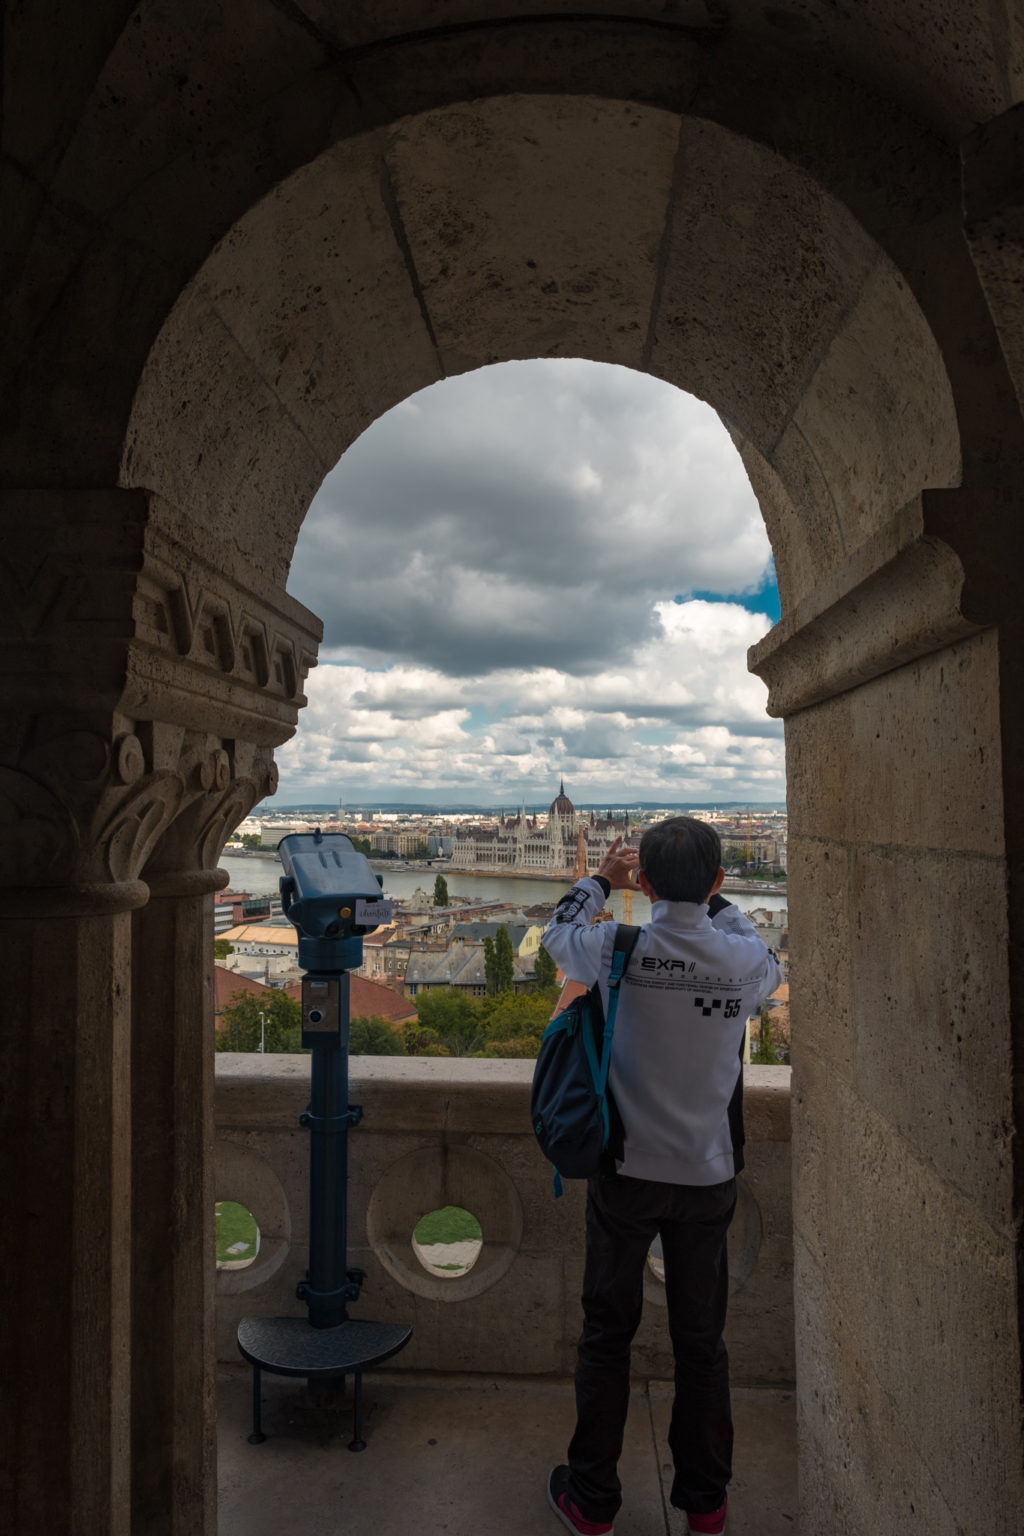 ourist takes photo of Budapest Parliament as seen through arch in Matthias Church, Hungary.